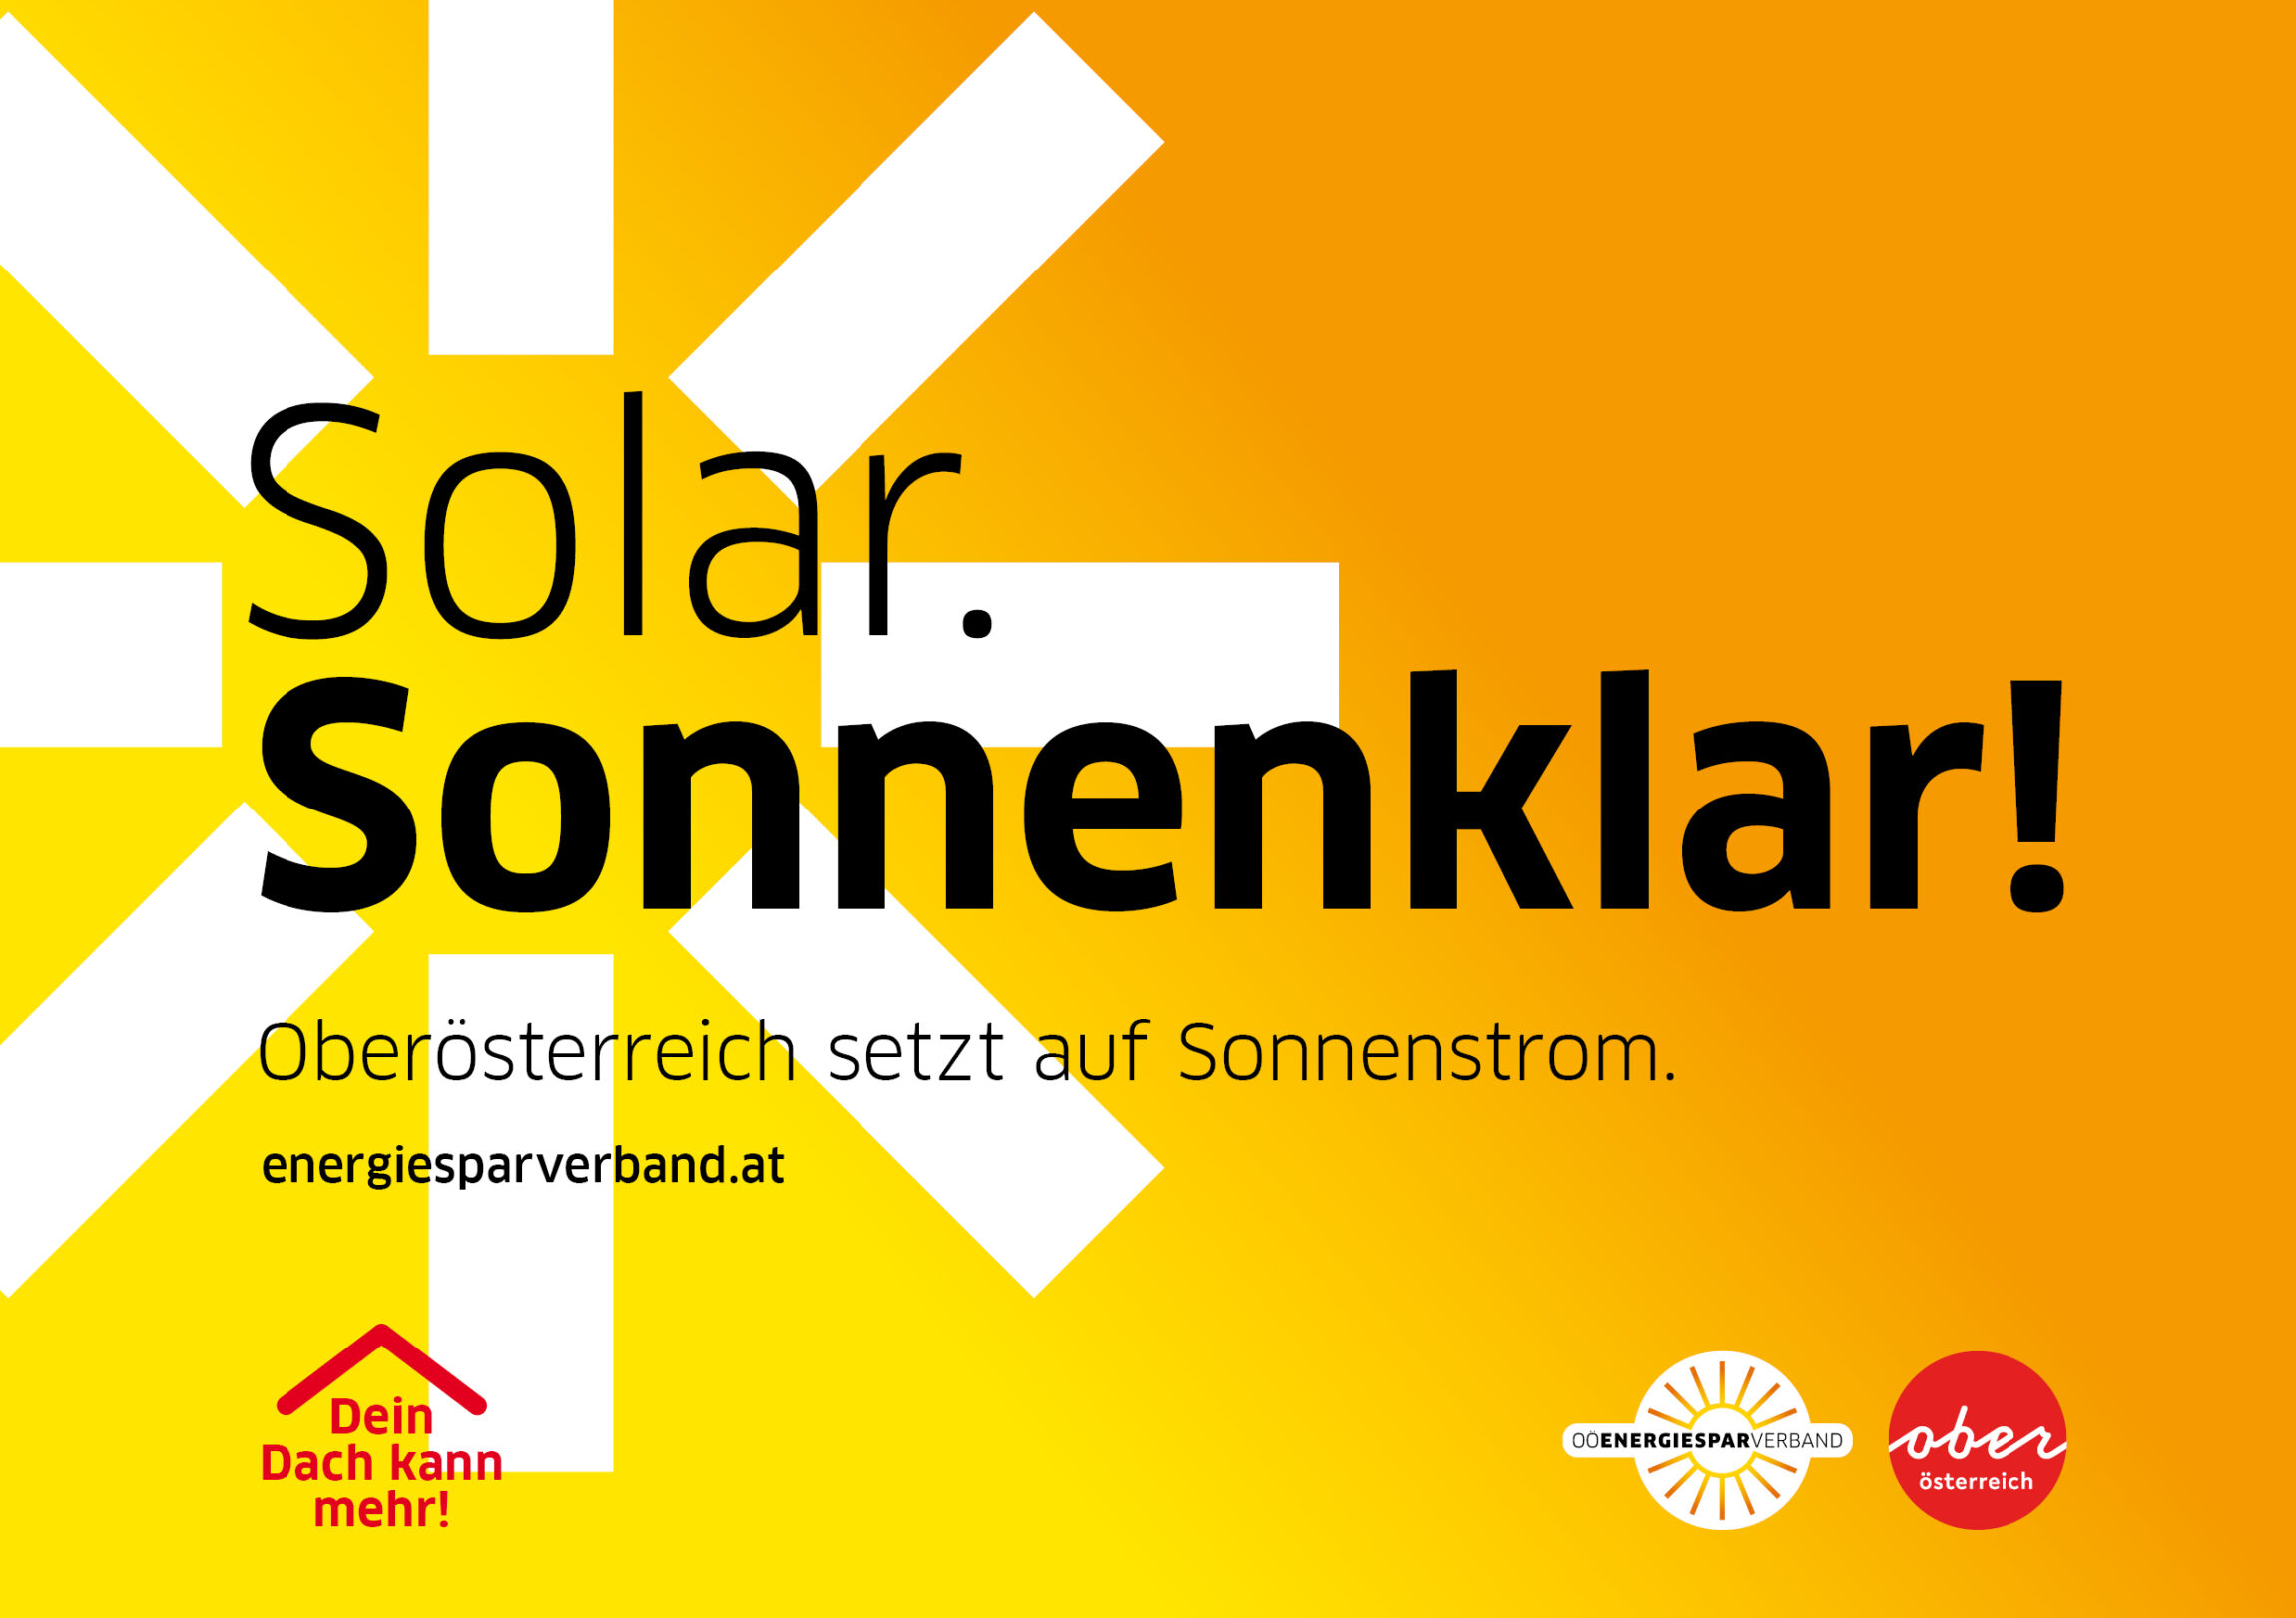 Upper Austria: 200,000 roof-top PV systems by 2030!